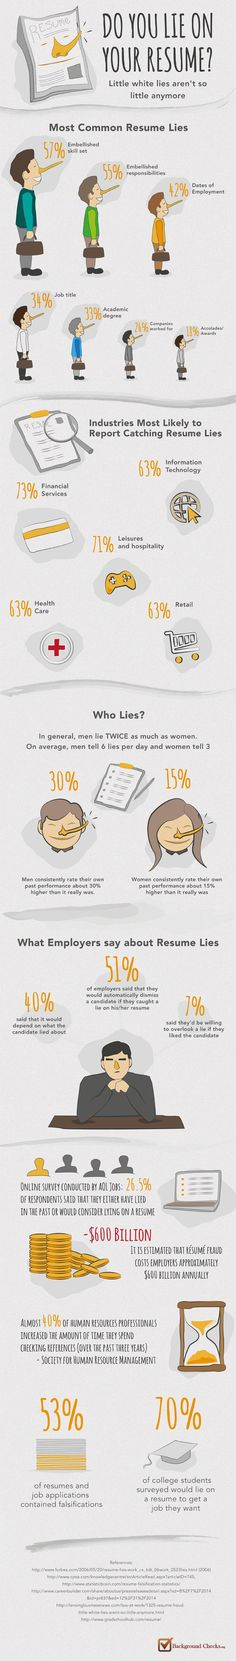 Do You Lie On Your Resume? #infographic